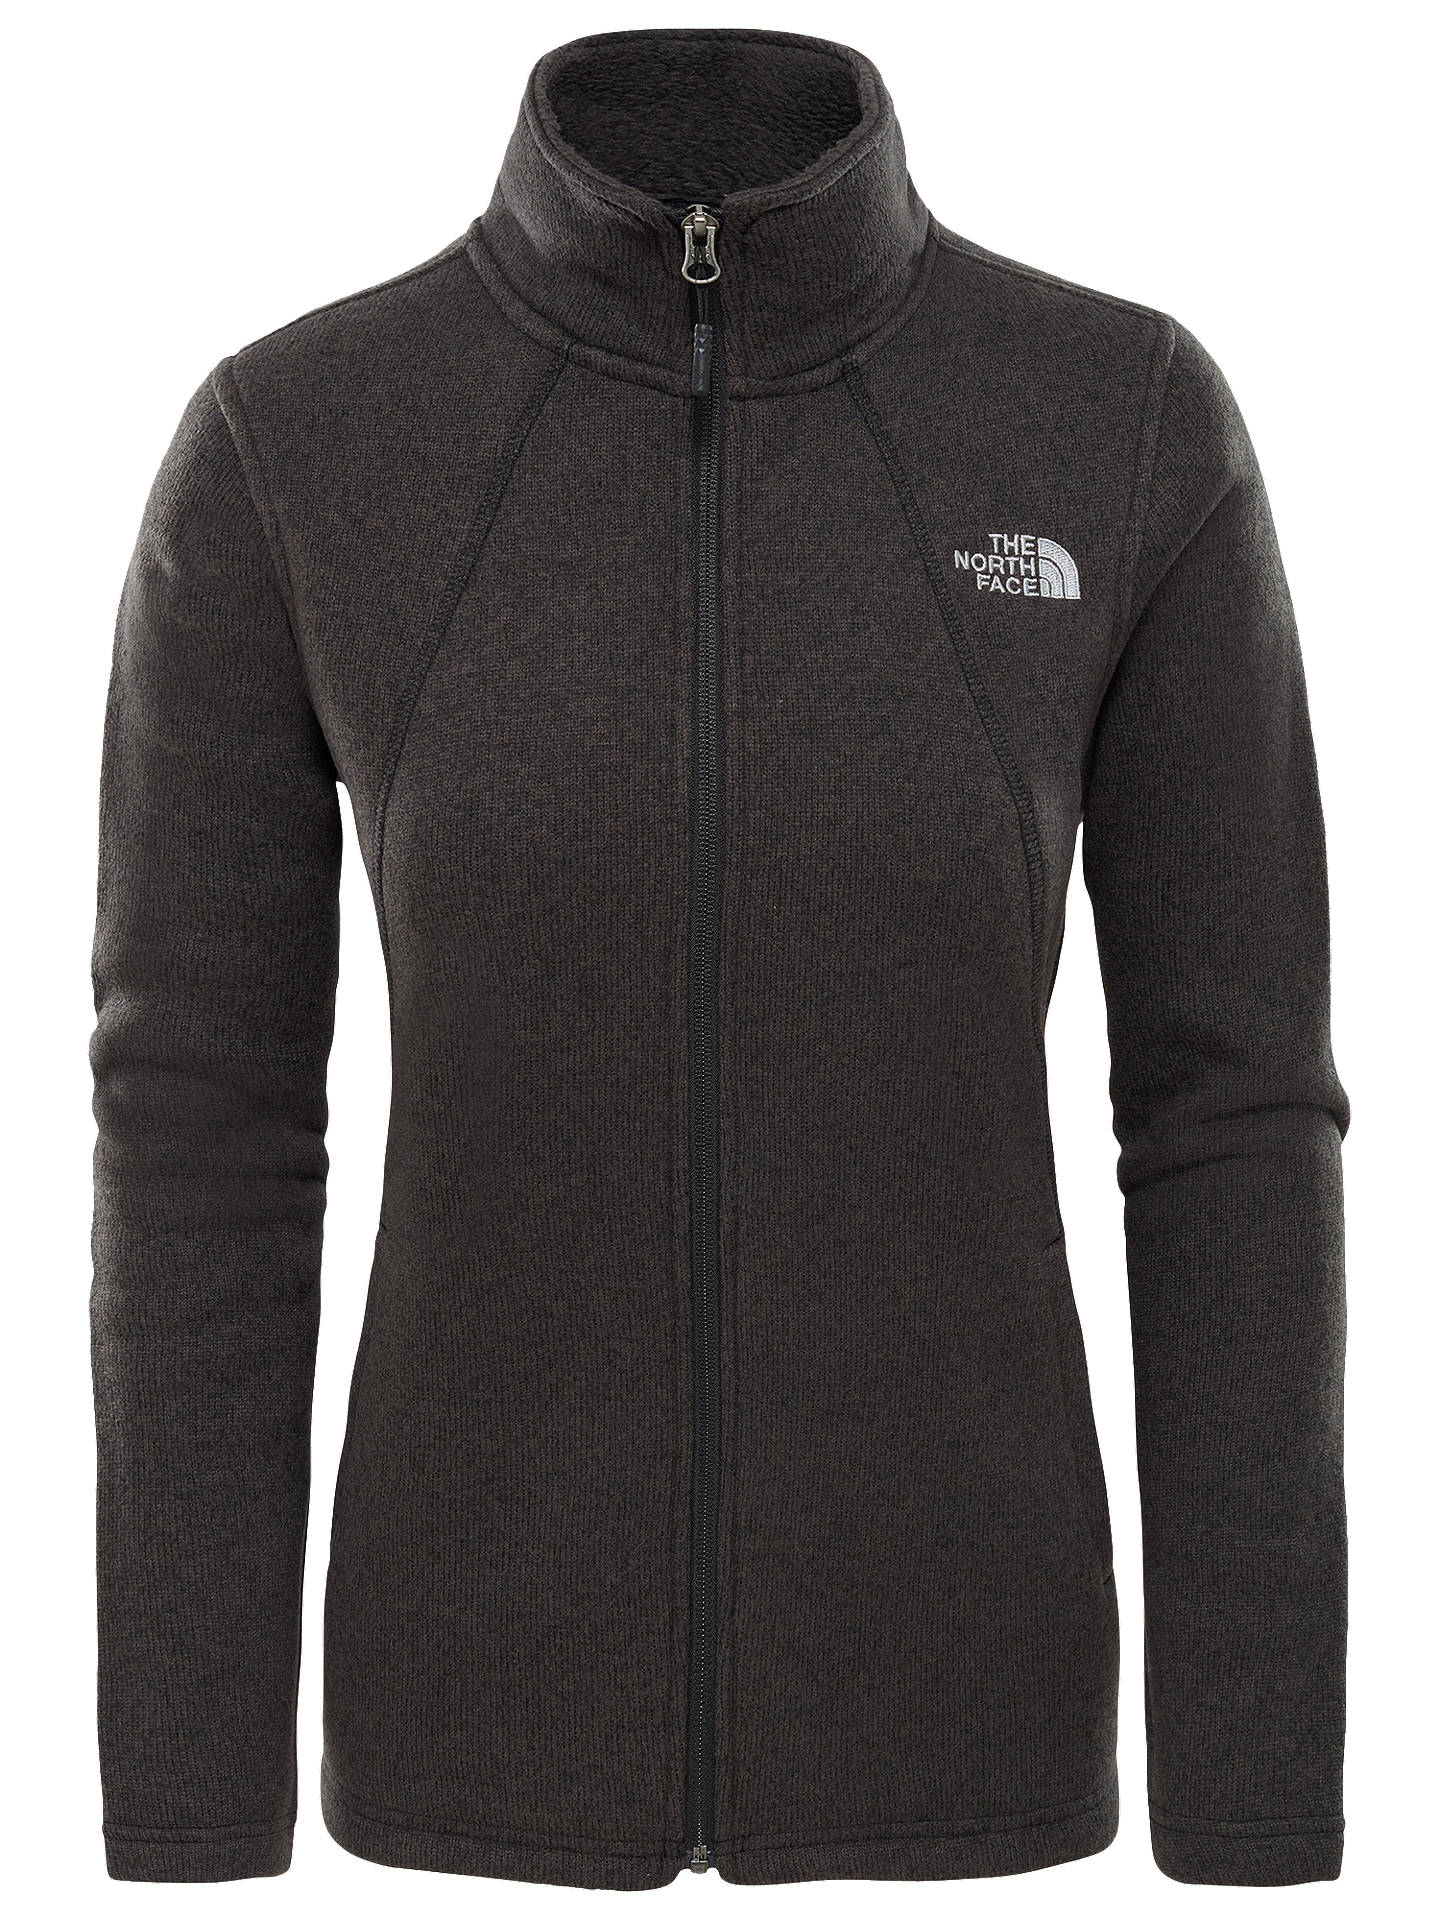 976fd48be The North Face Crescent Women's Jacket at John Lewis & Partners